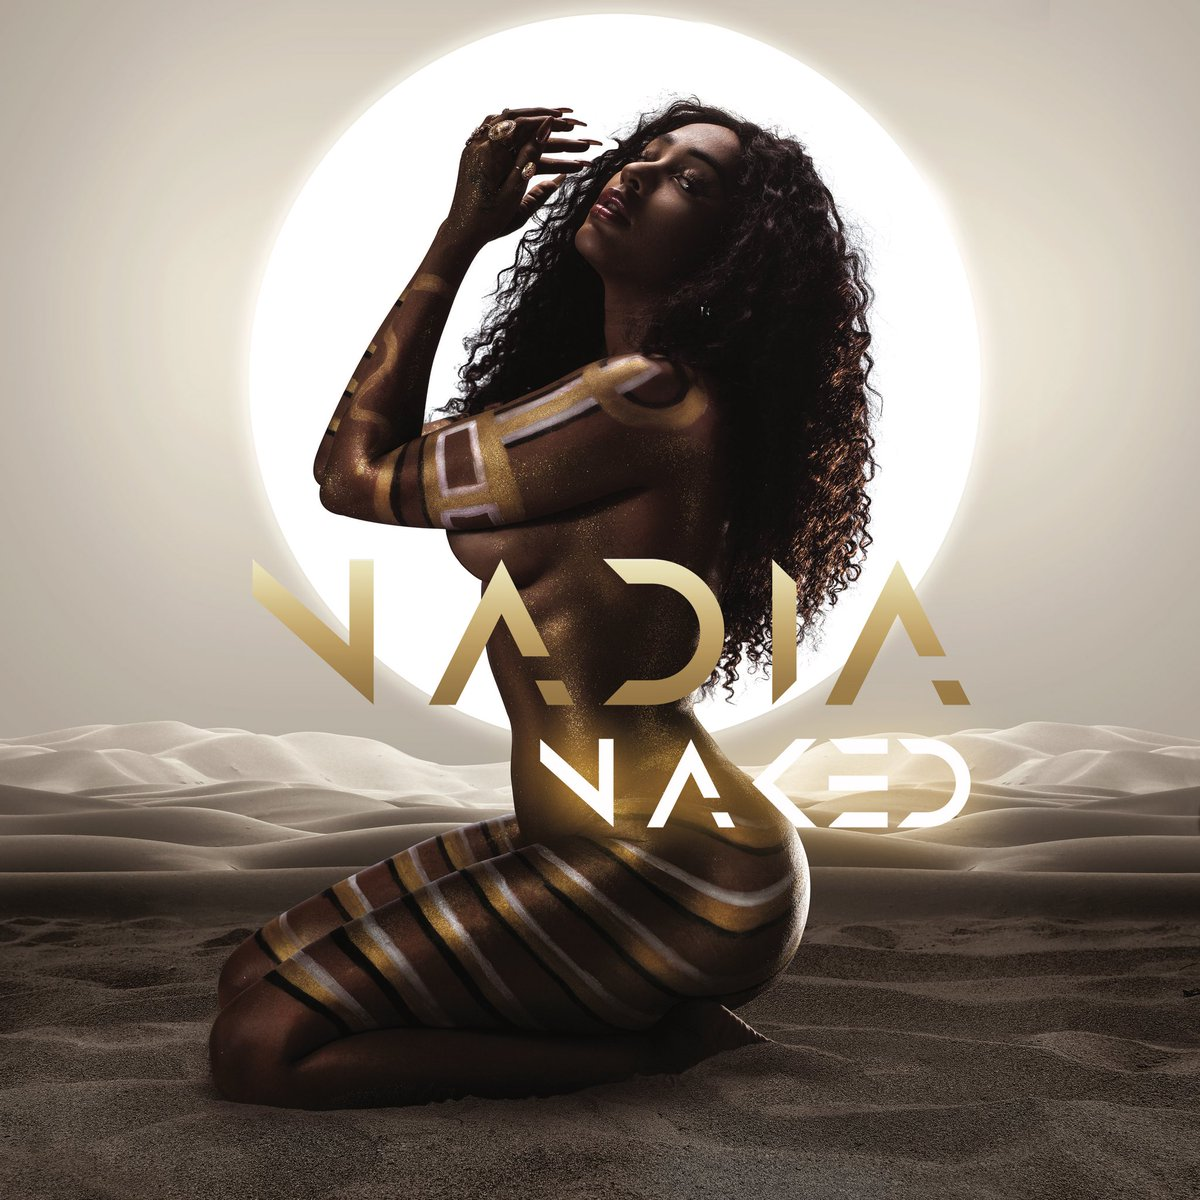 nadia naked All You Need To Know About Nadia Nakai's Upcoming 'Nadia Naked' Debut Album So Far D6wTDrdXkAAi Qt 1